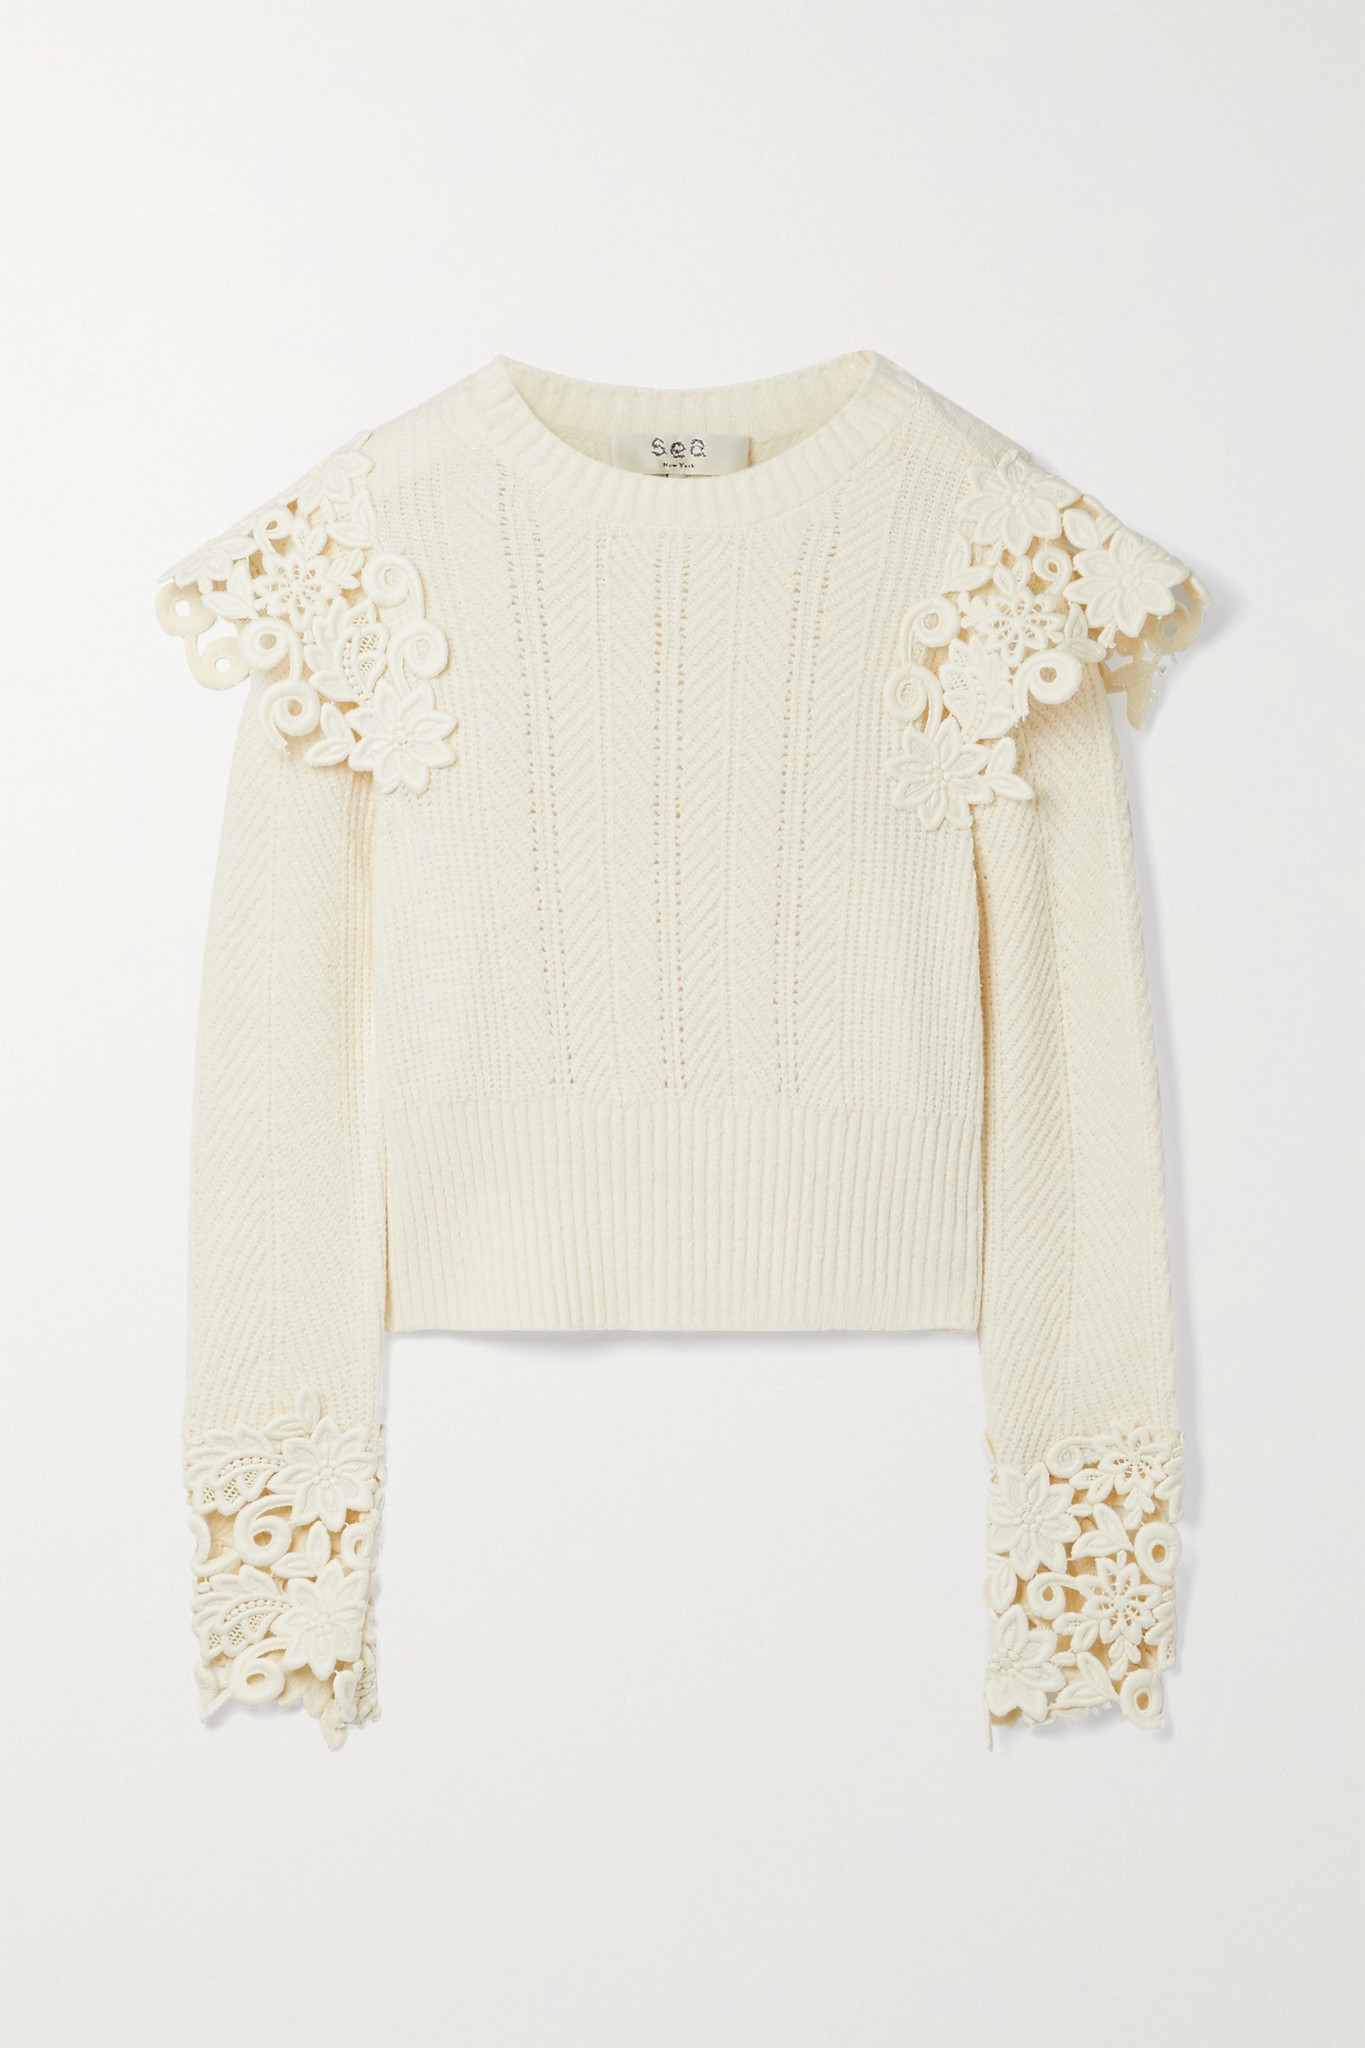 SEA - Zandra Guipure Lace-trimmed Ribbed Cotton-blend Sweater - Ivory - large